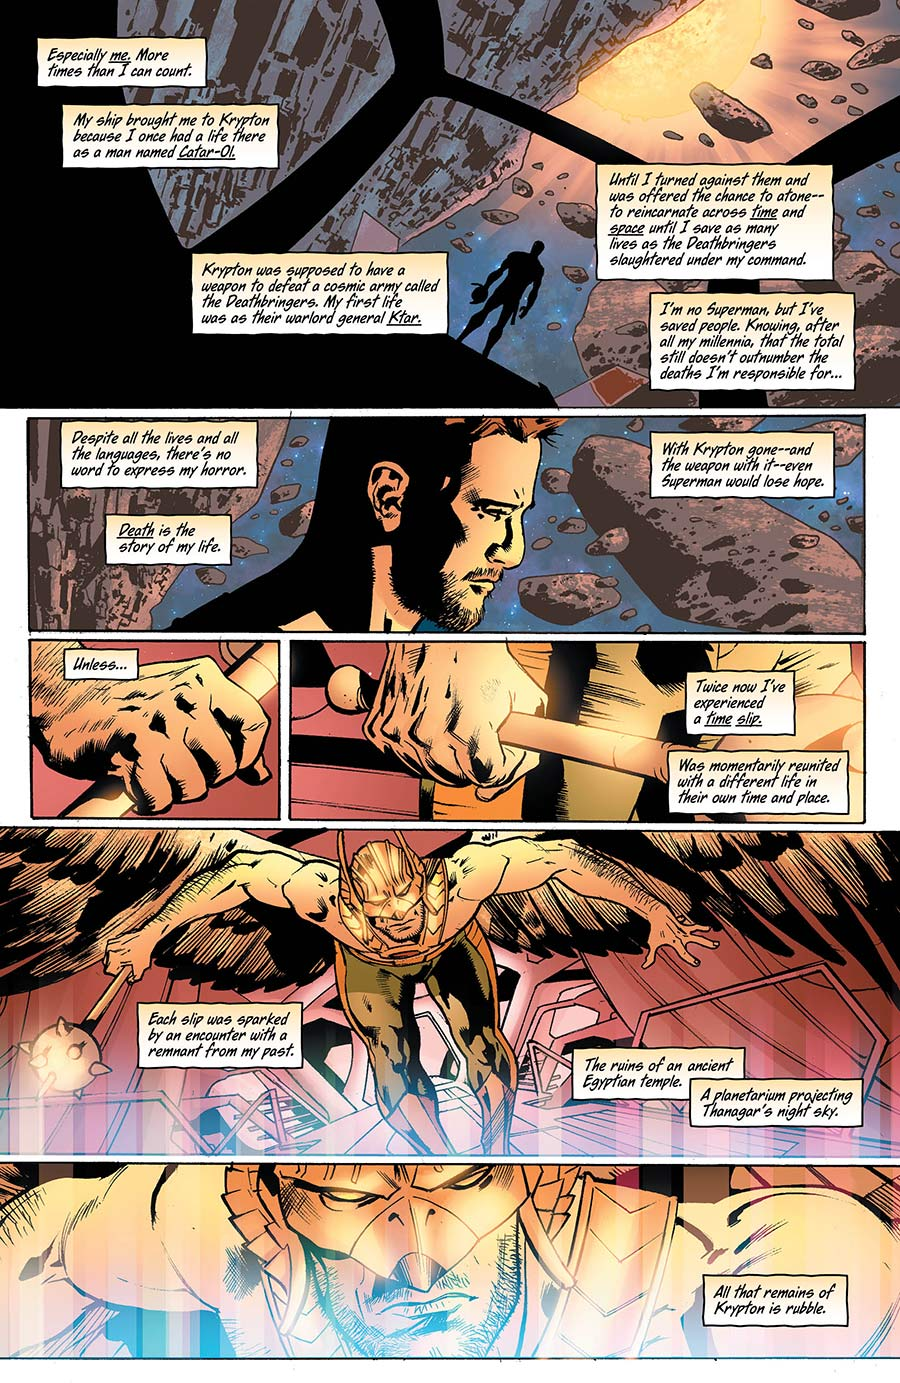 Hawkman_8_2 - DC Comics News